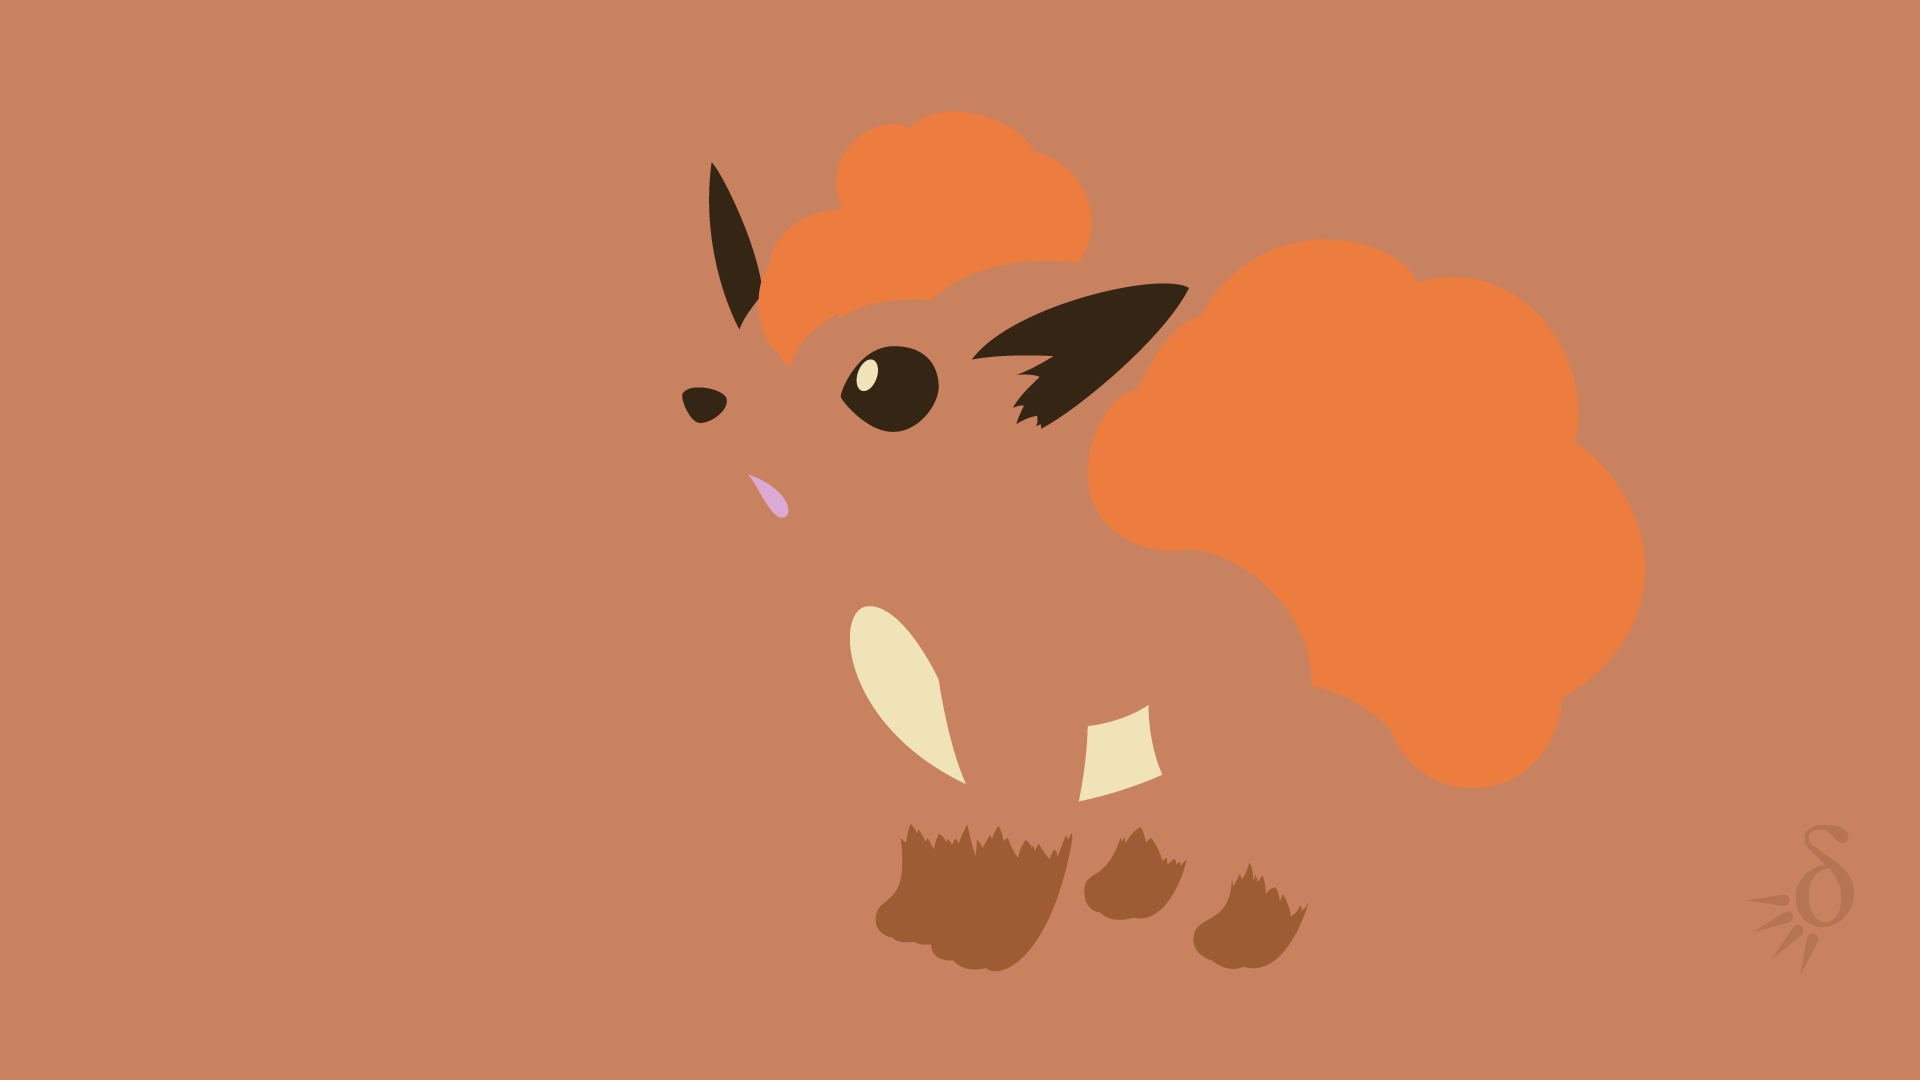 Vulpix by Krukmeister on DeviantArt